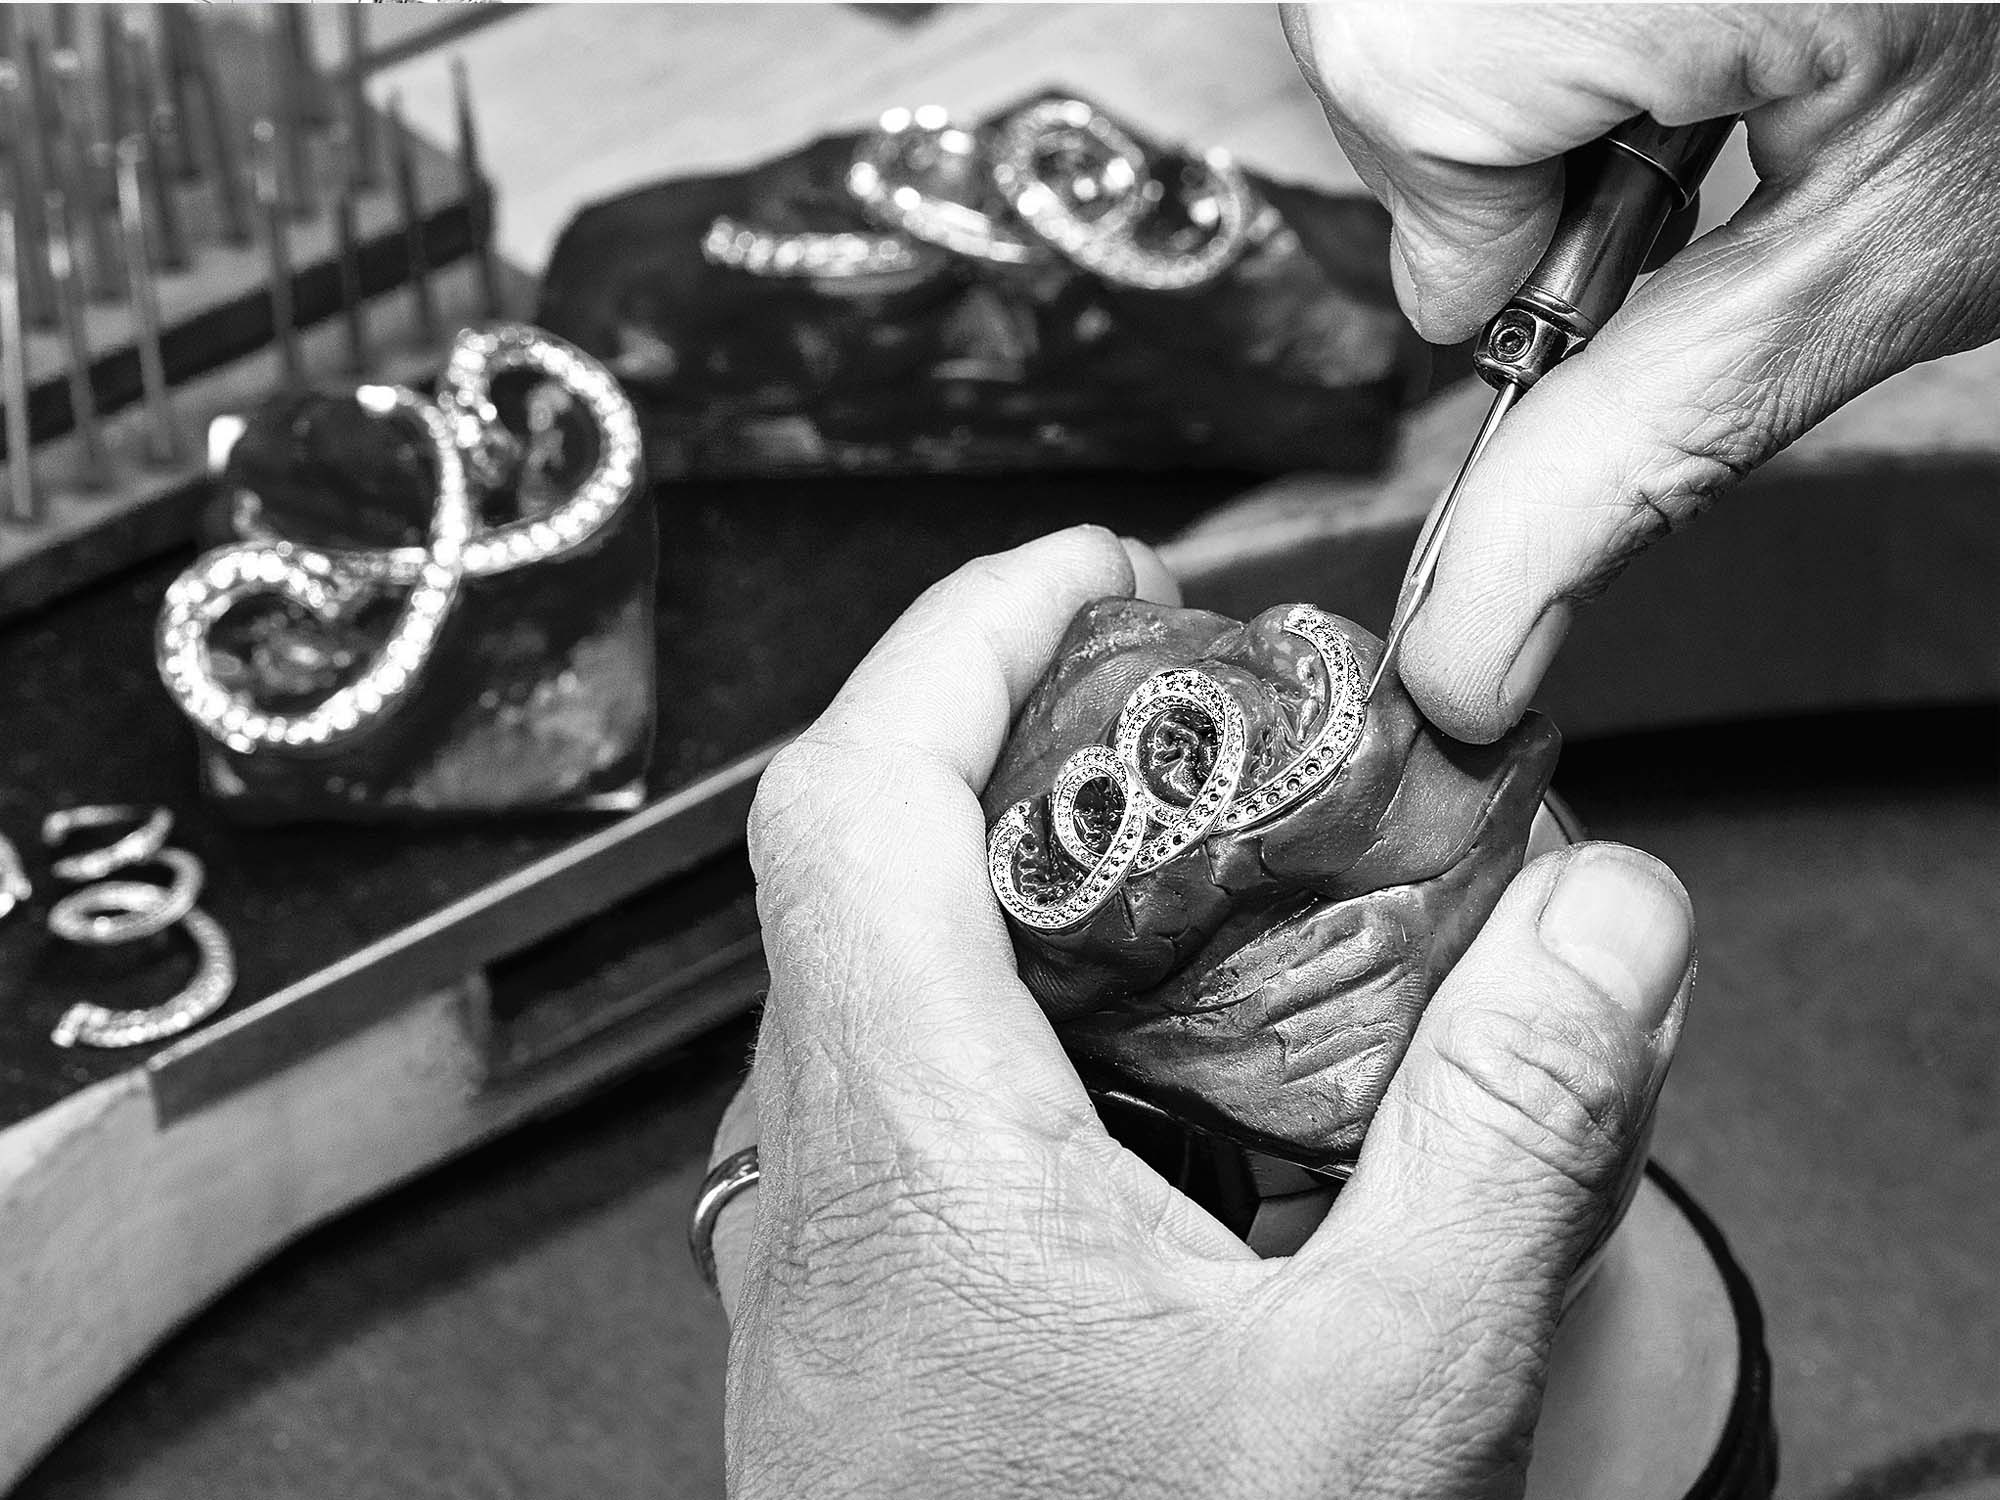 Graff Jeweler crafting Graff Inspired by Twombly diamond jewellery collection.